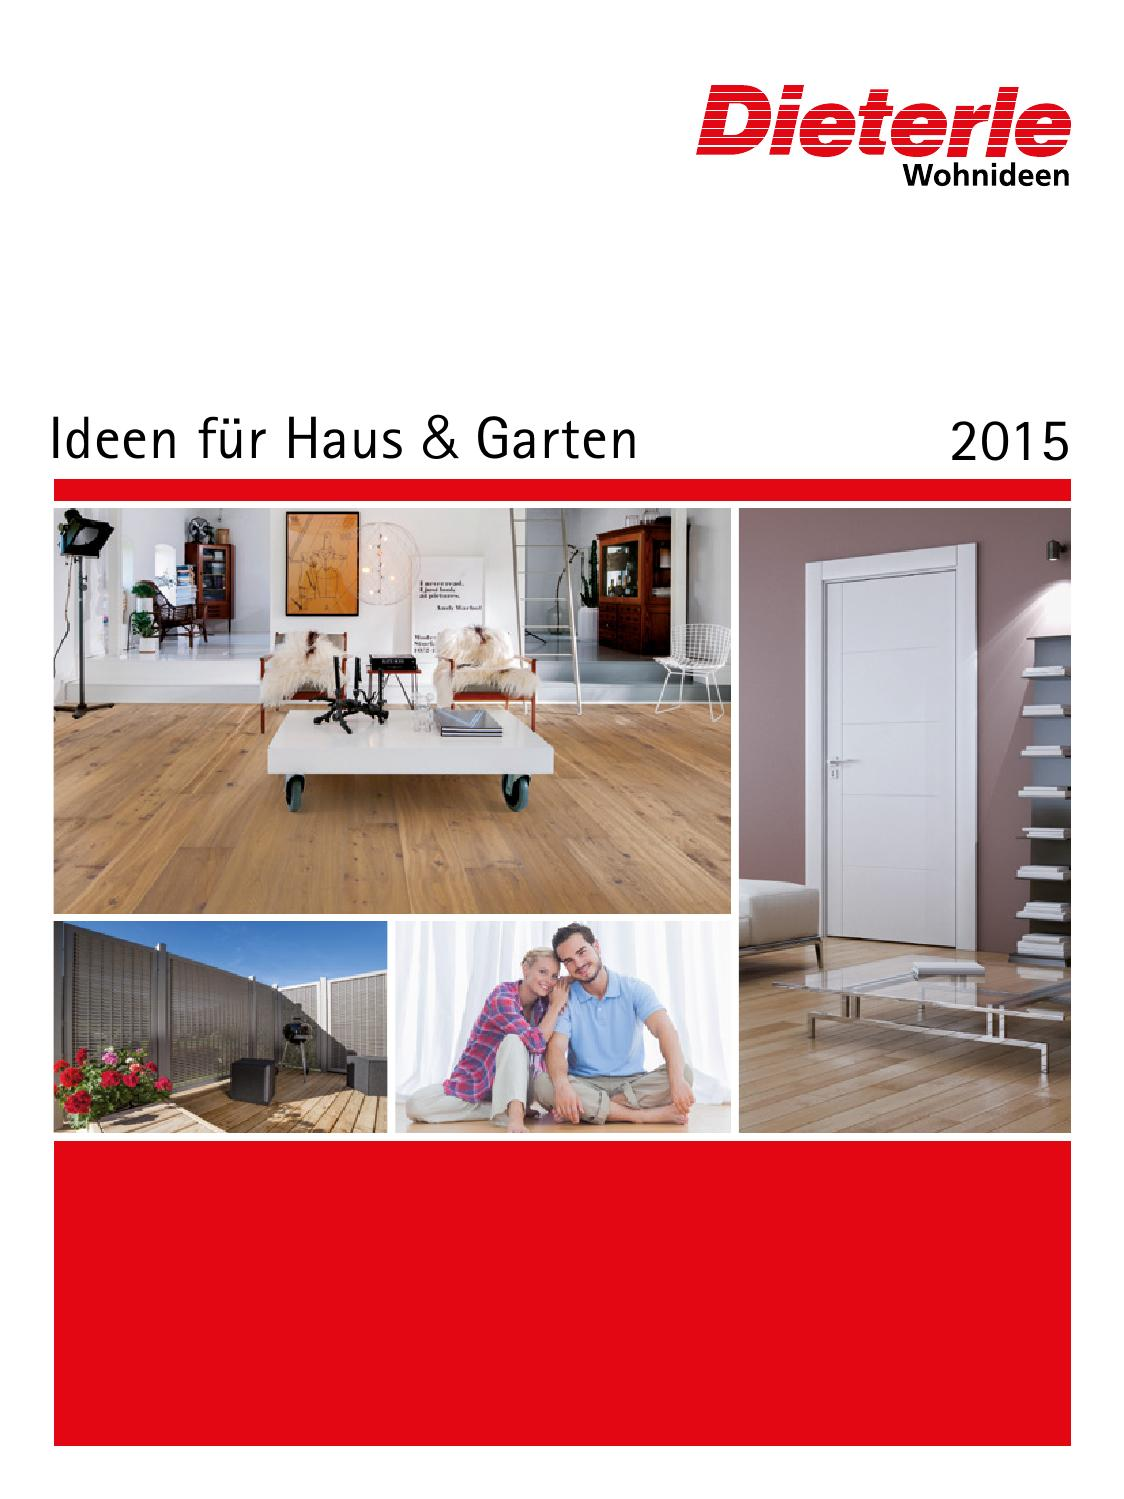 Dieterle Wohnideen by Kaiser Design - issuu